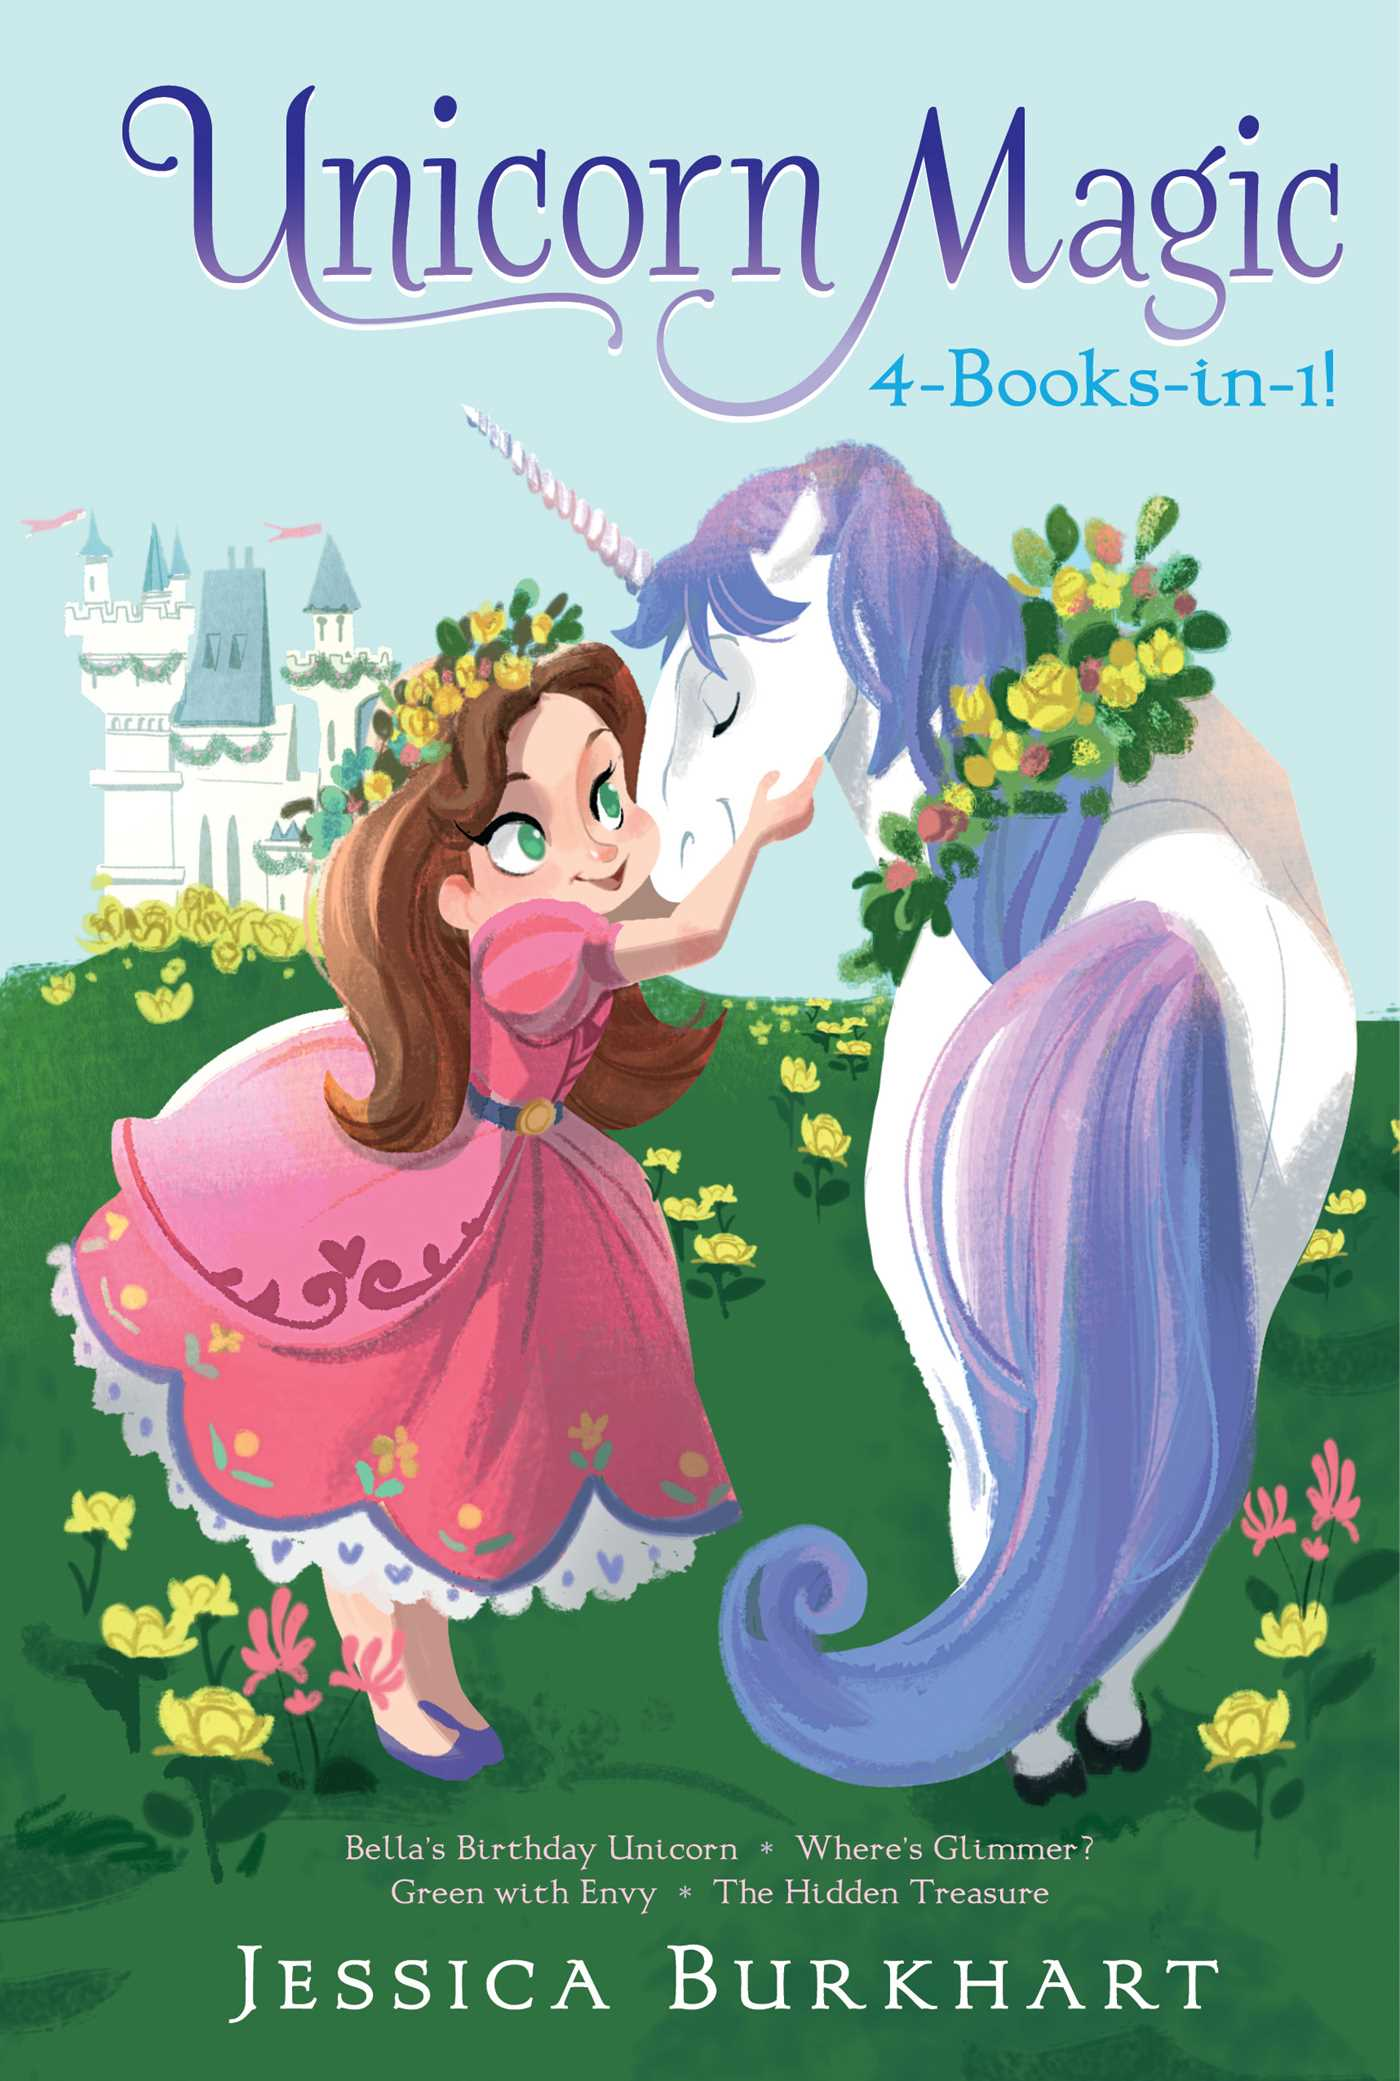 Unicorn magic 4 books in 1 9781481494748 hr